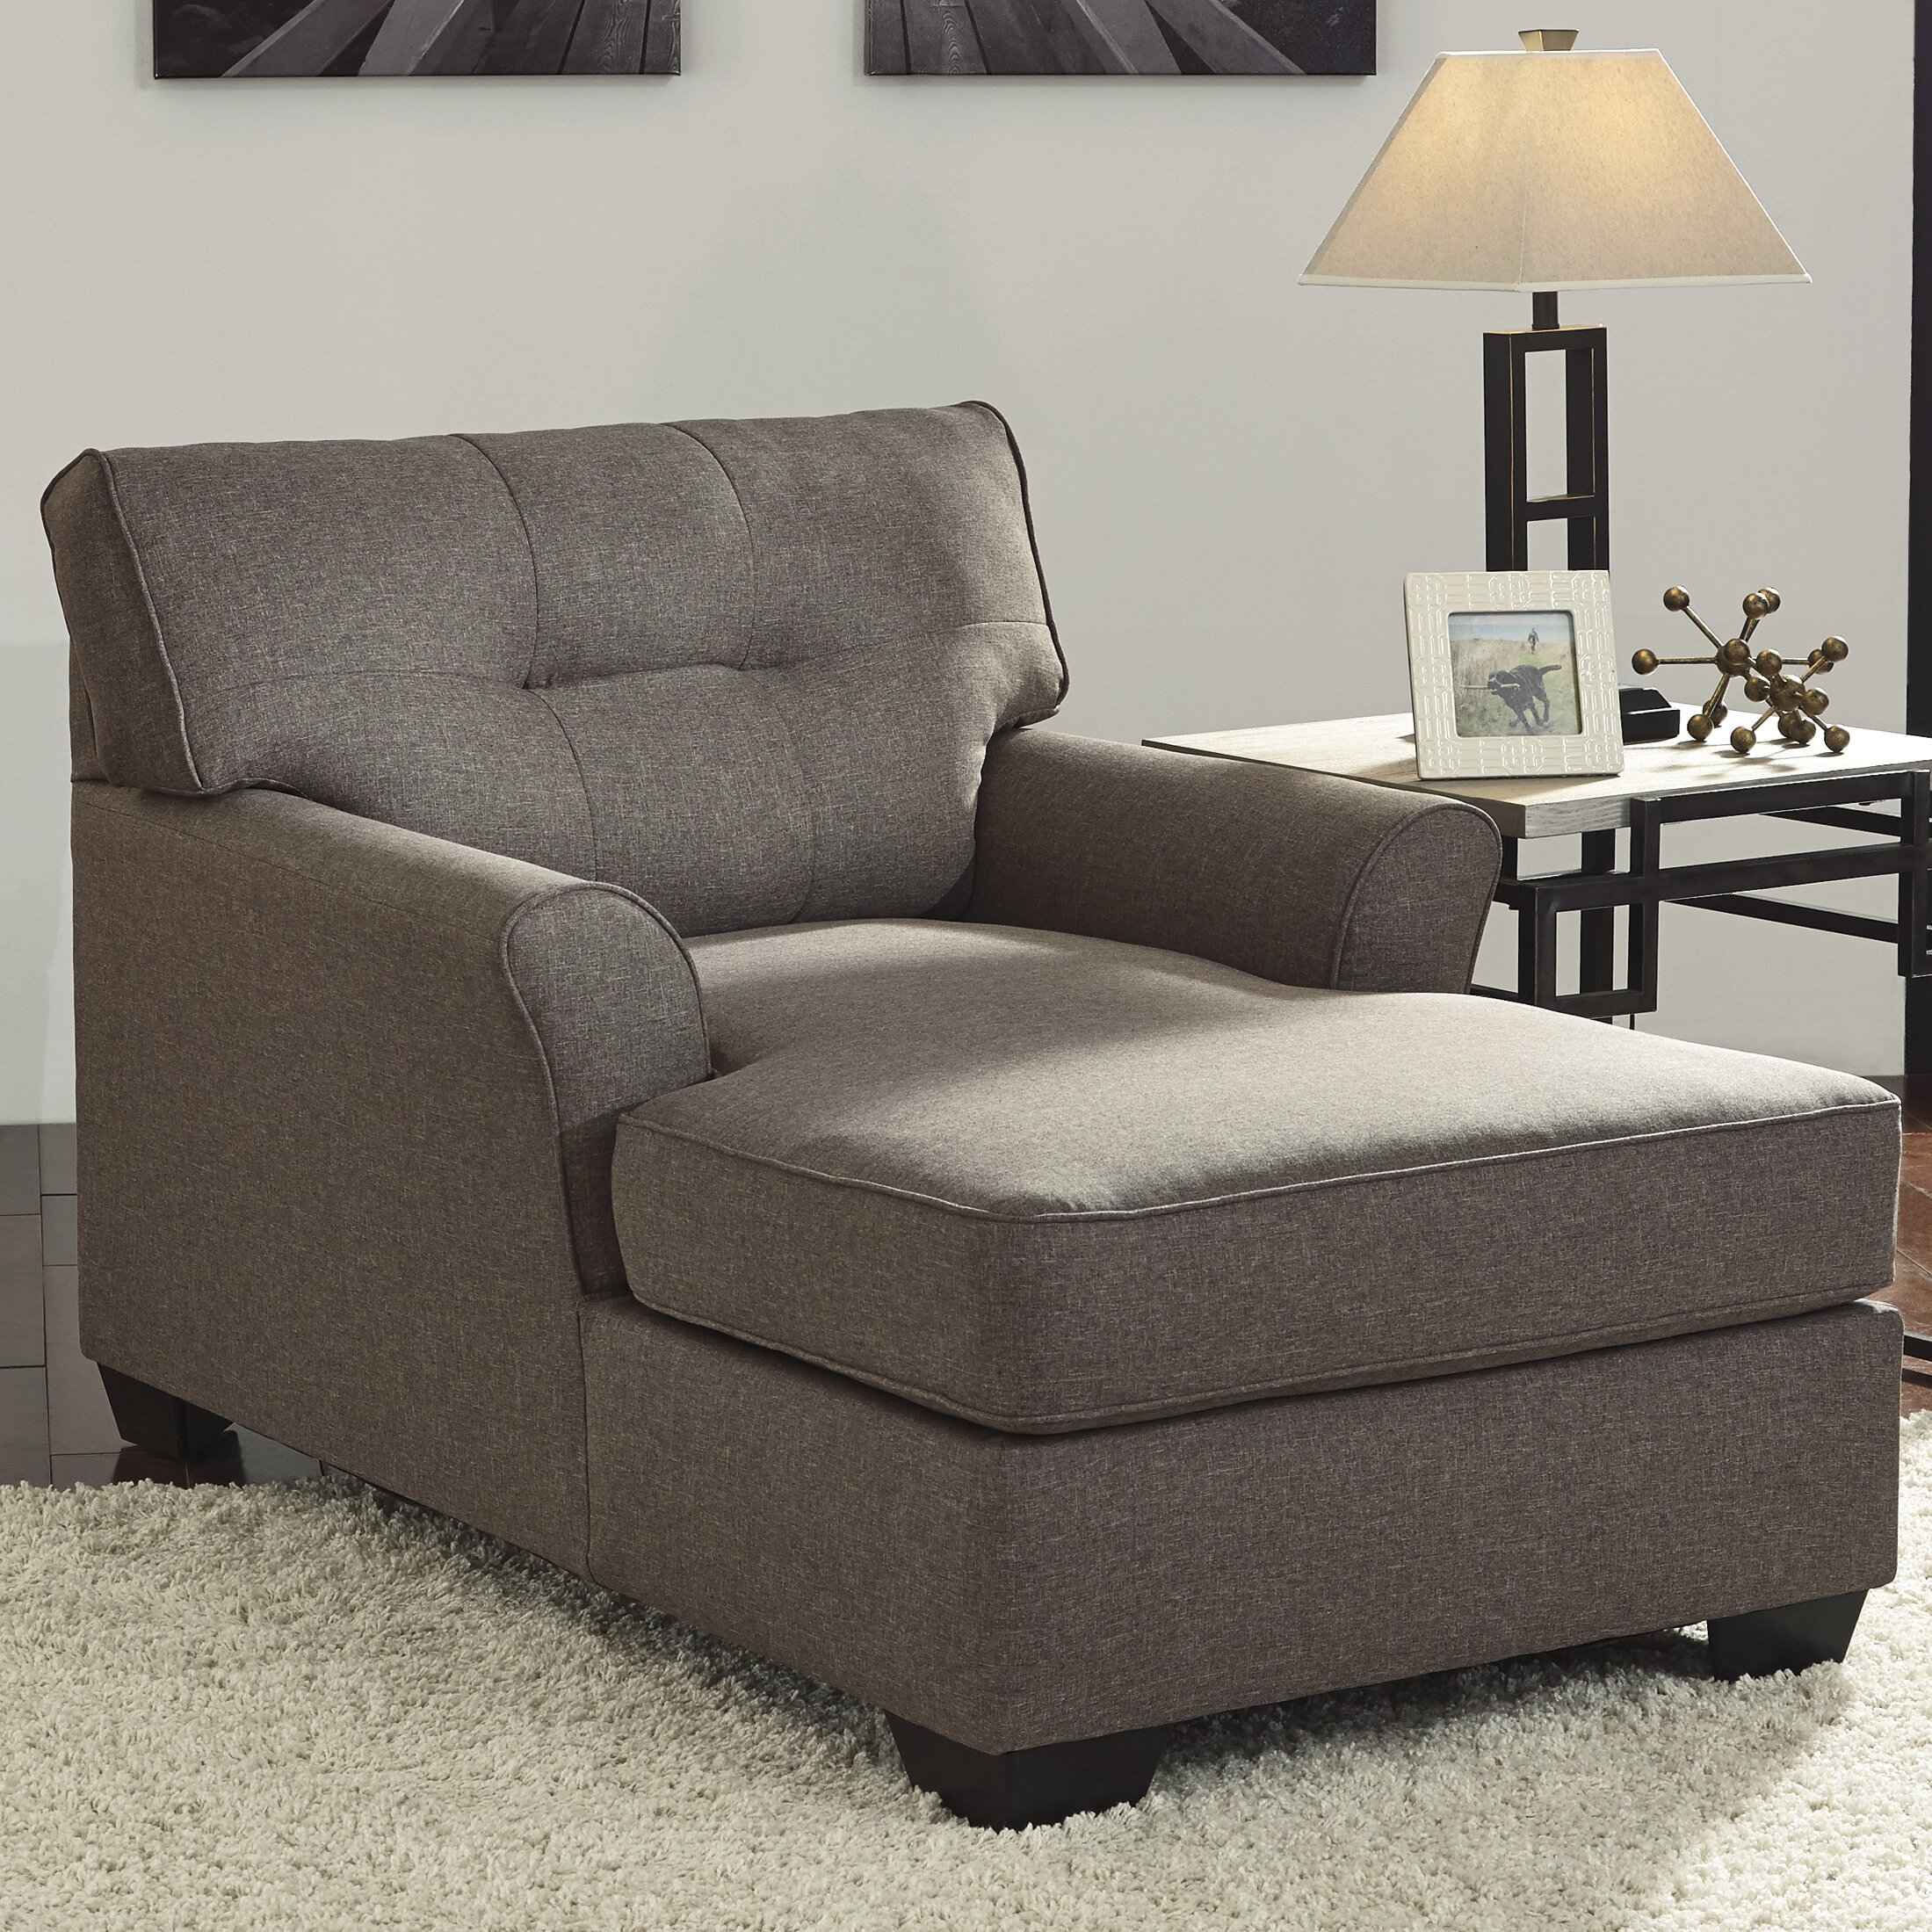 Signature design by ashley tibbee chaise lounge reviews for Ashley chaise lounge